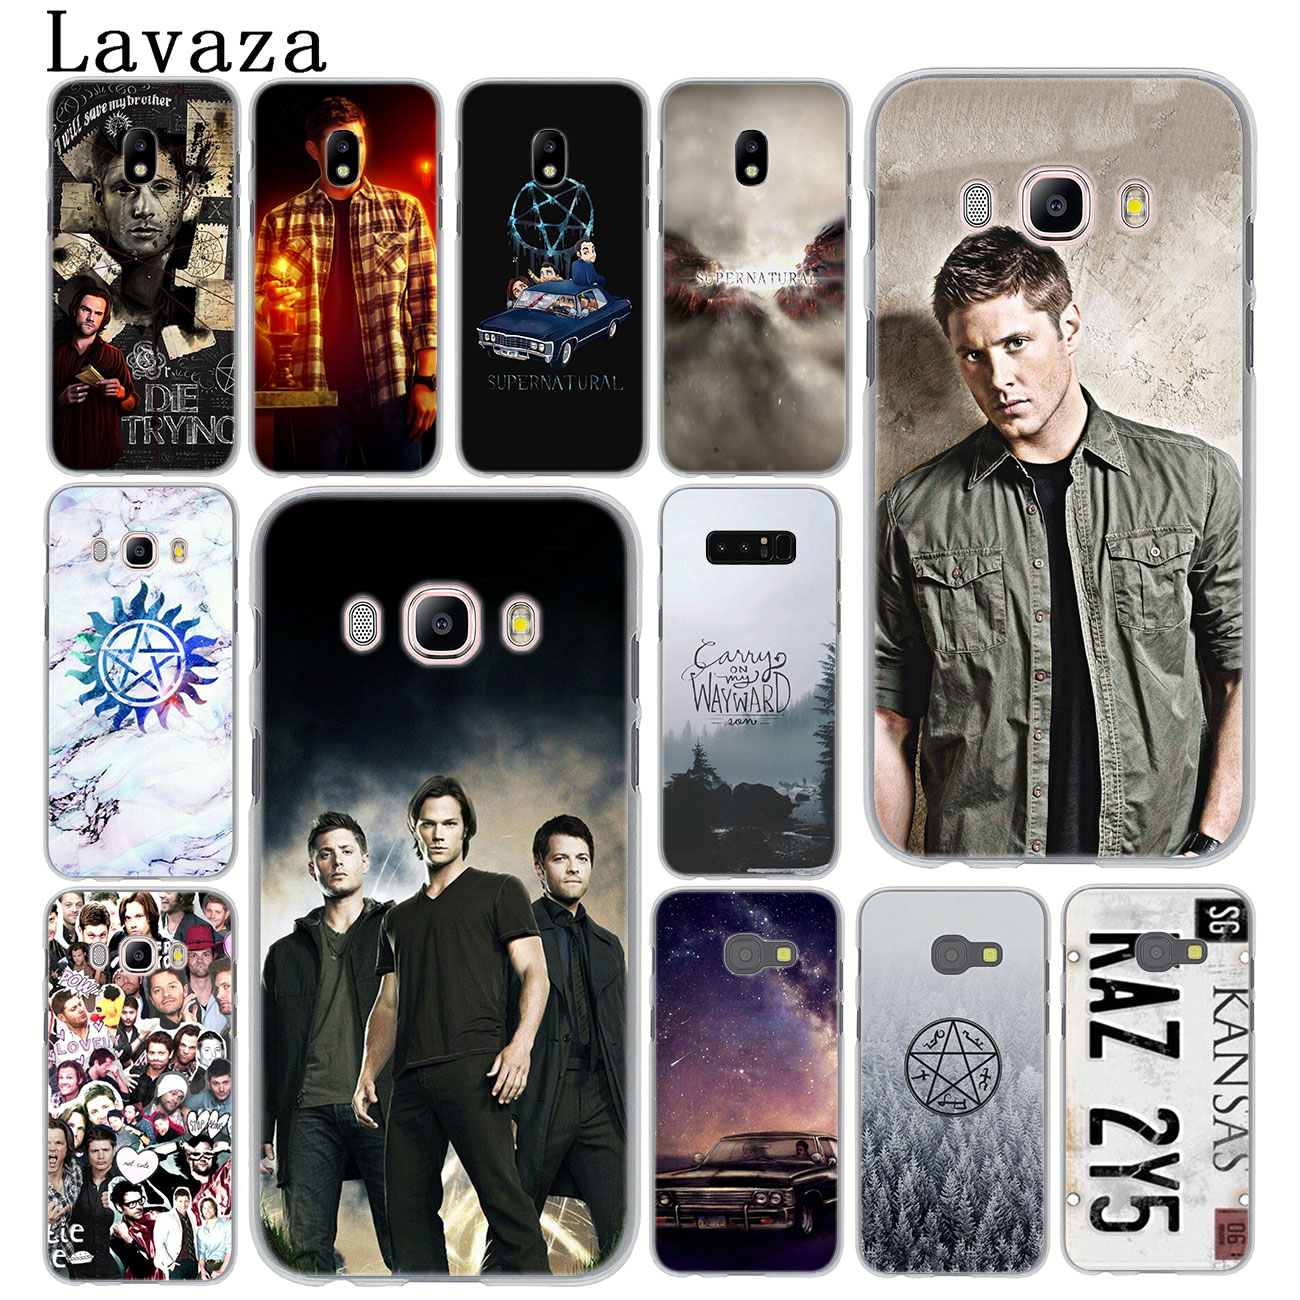 Lavaza Supernatural Jared Padalecki Phone Case for Samsung Galaxy J8 J7 Duo J4 J5 J6 Plus 2018 2017 2016 J2 J3 Prime 2015 Cover image